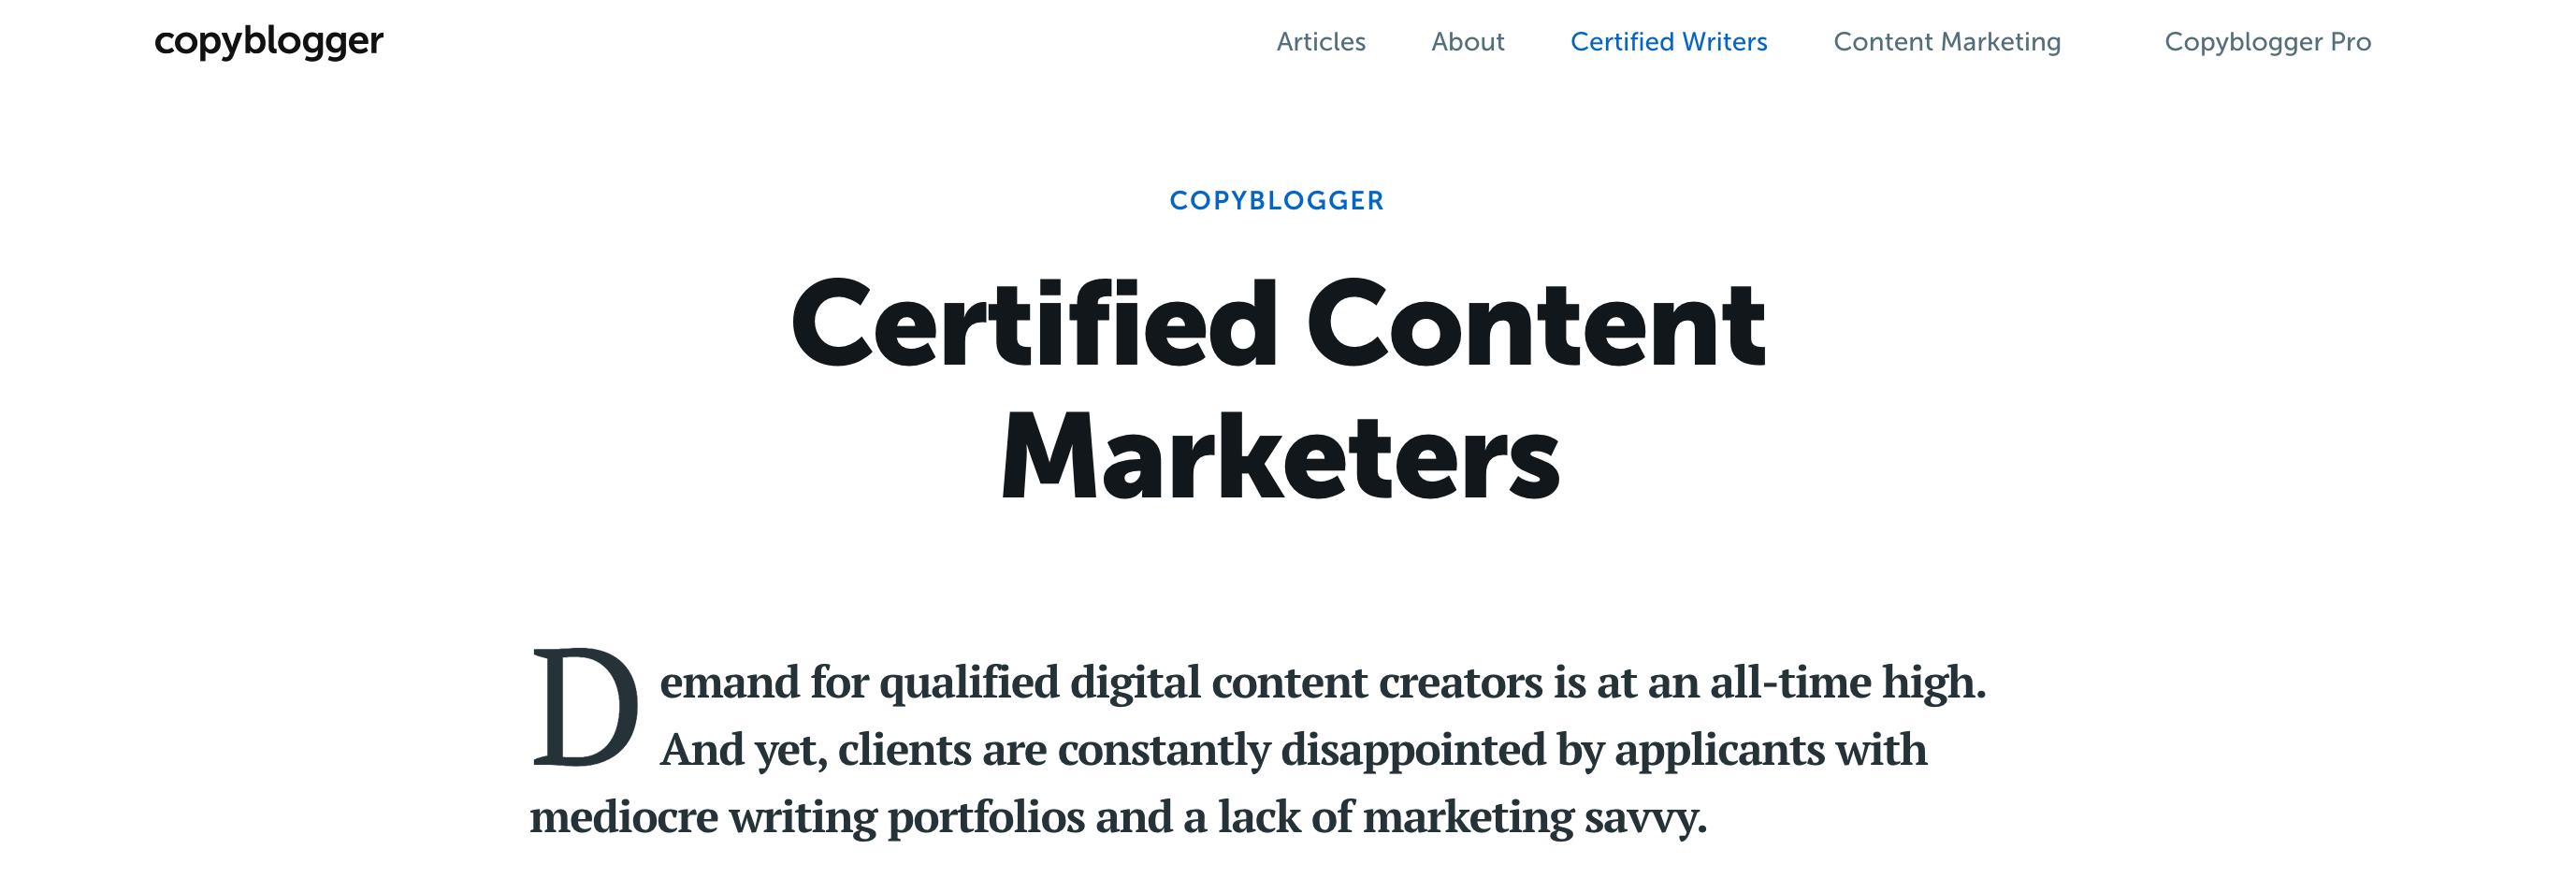 Copyblogger Certified Content marketer Certification